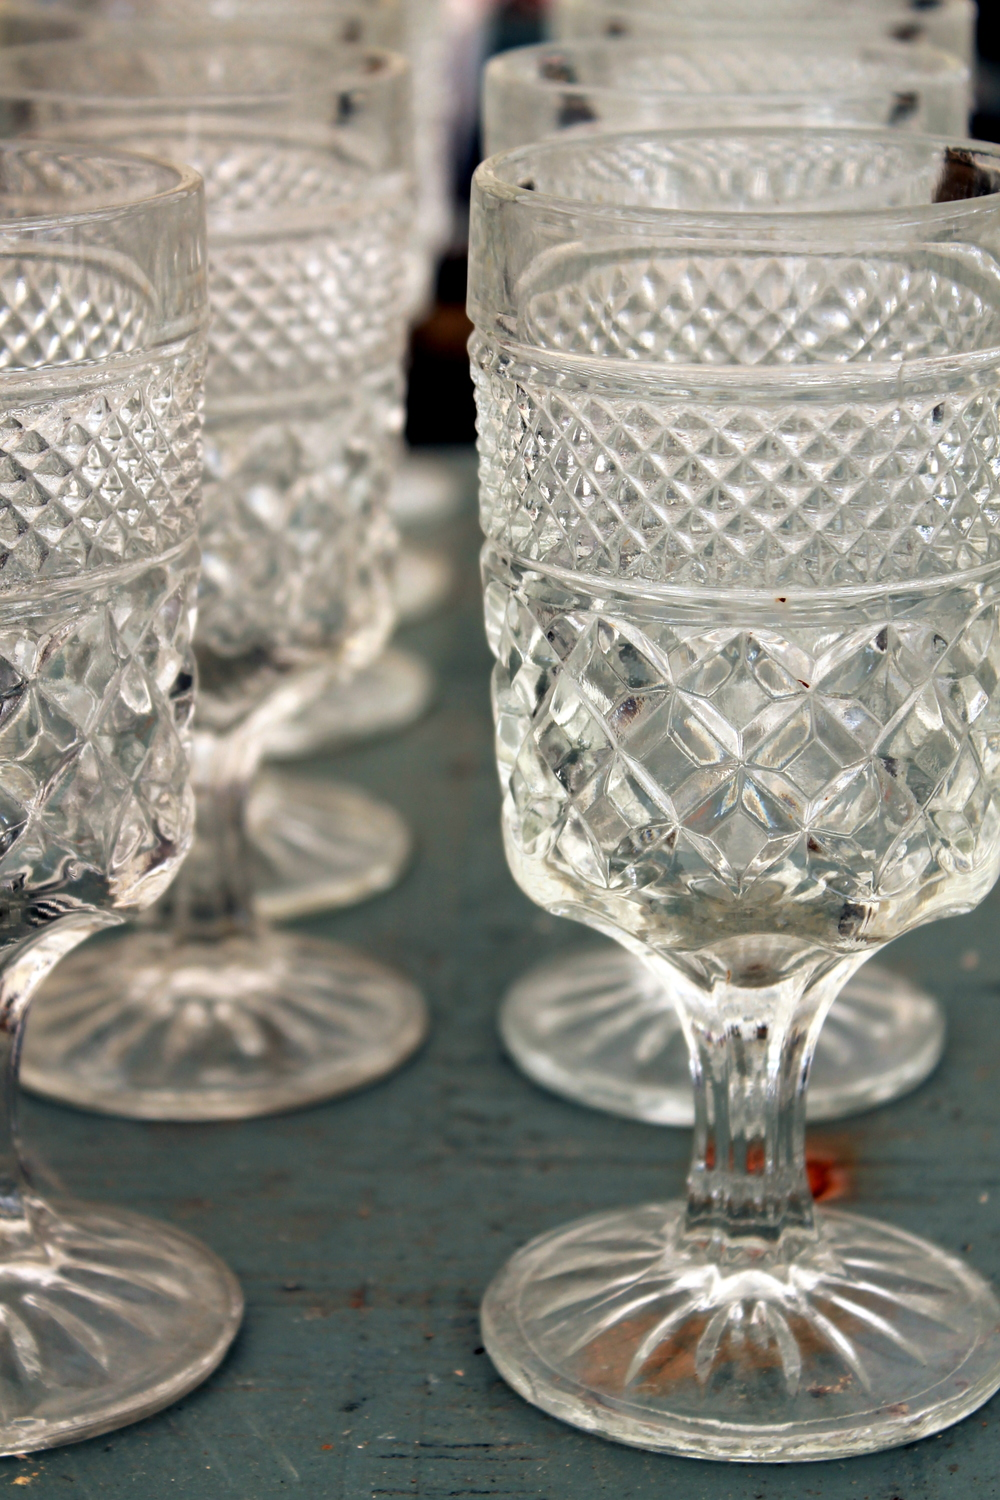 Add to your existing barware with some fun vintage Depression era glassware.